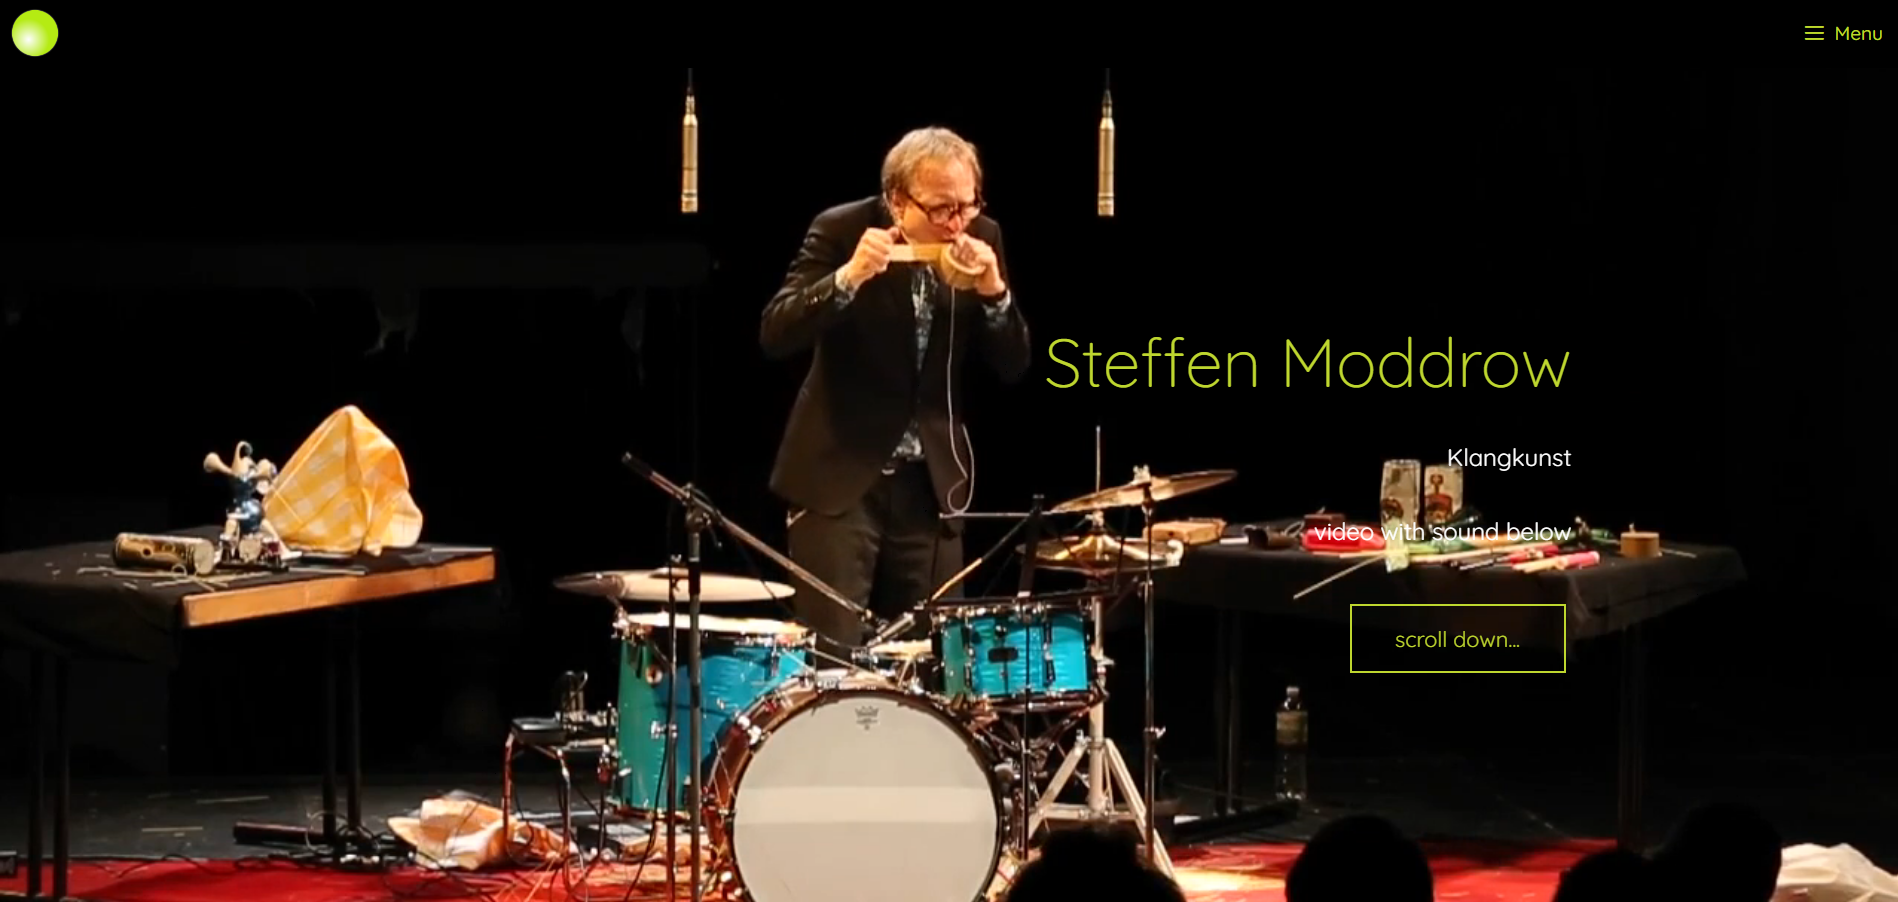 steffen moddrow 2019